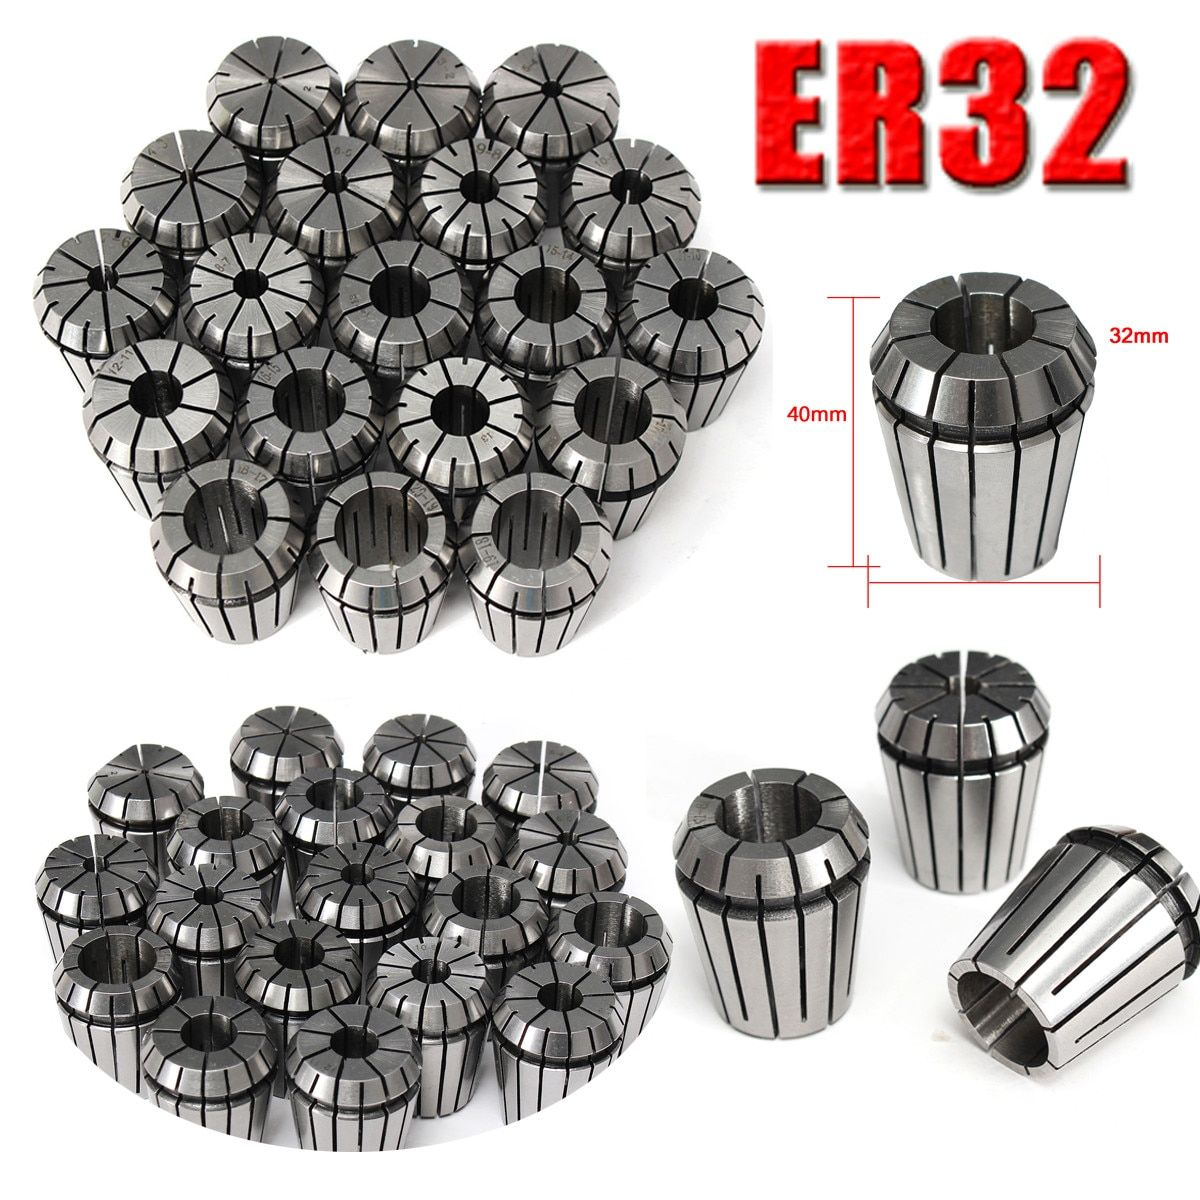 19pcs ER32 Collet Chuck Metric Precision 2-20mm For CNC Chuck Milling Engraving Tools Machine Tools Accessories Milling Cutter